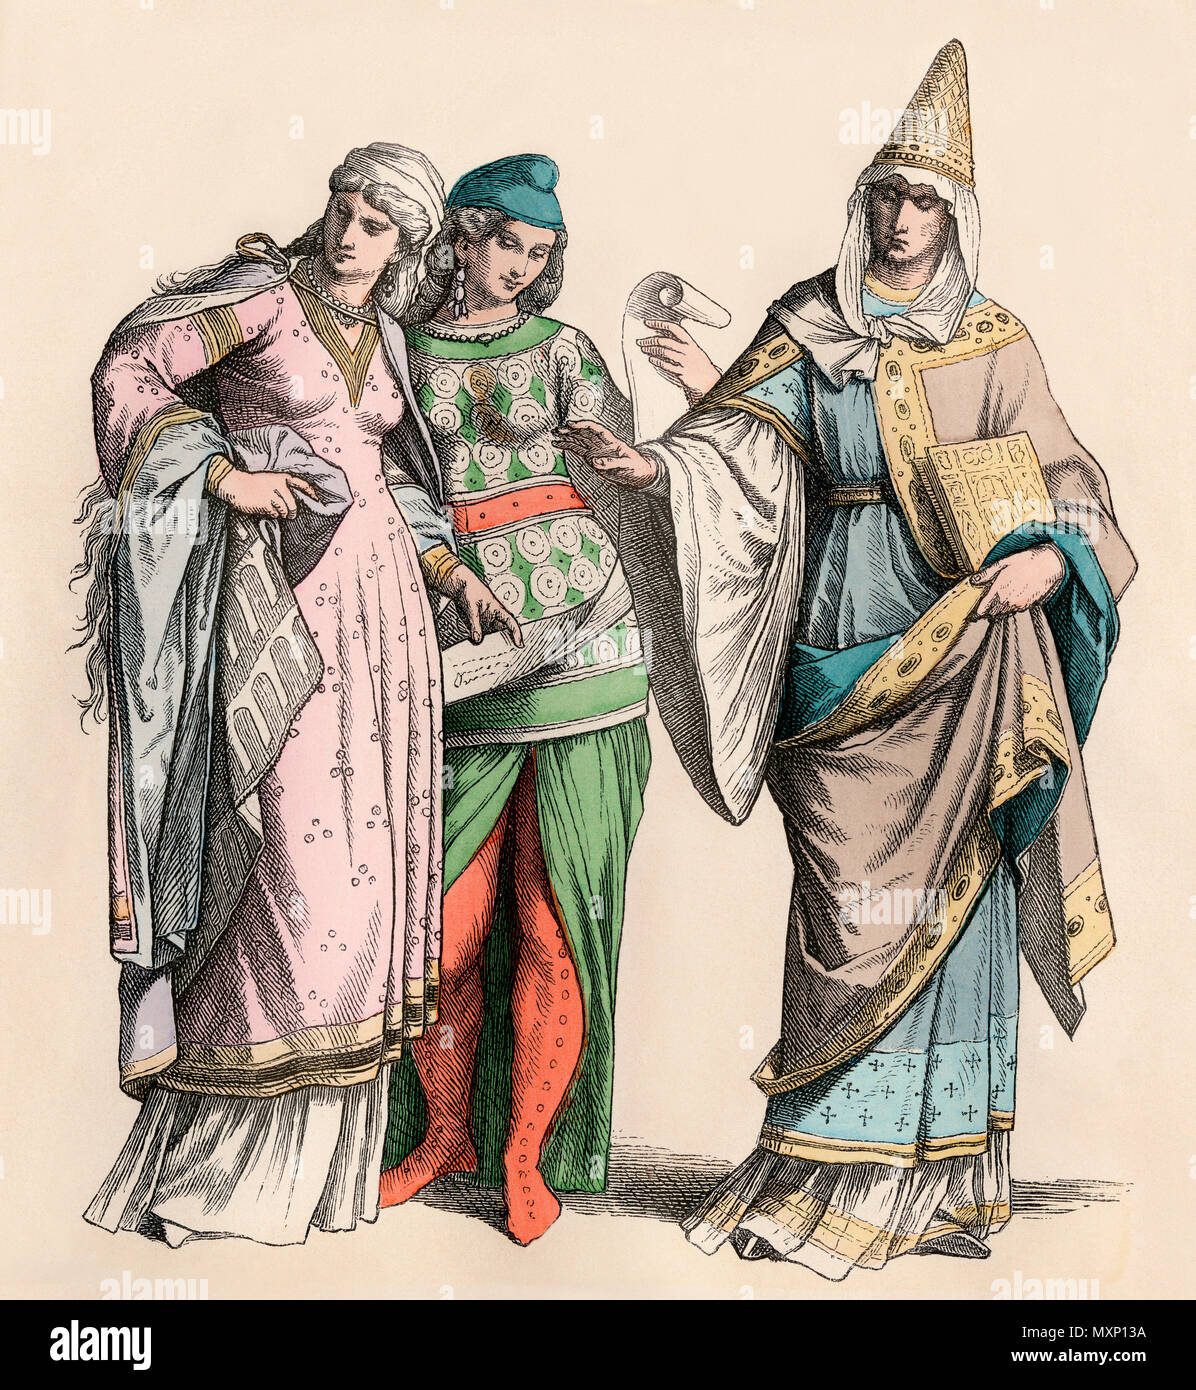 Women and a noblewoman of Normandy, 12th century. Hand-colored print - Stock Image